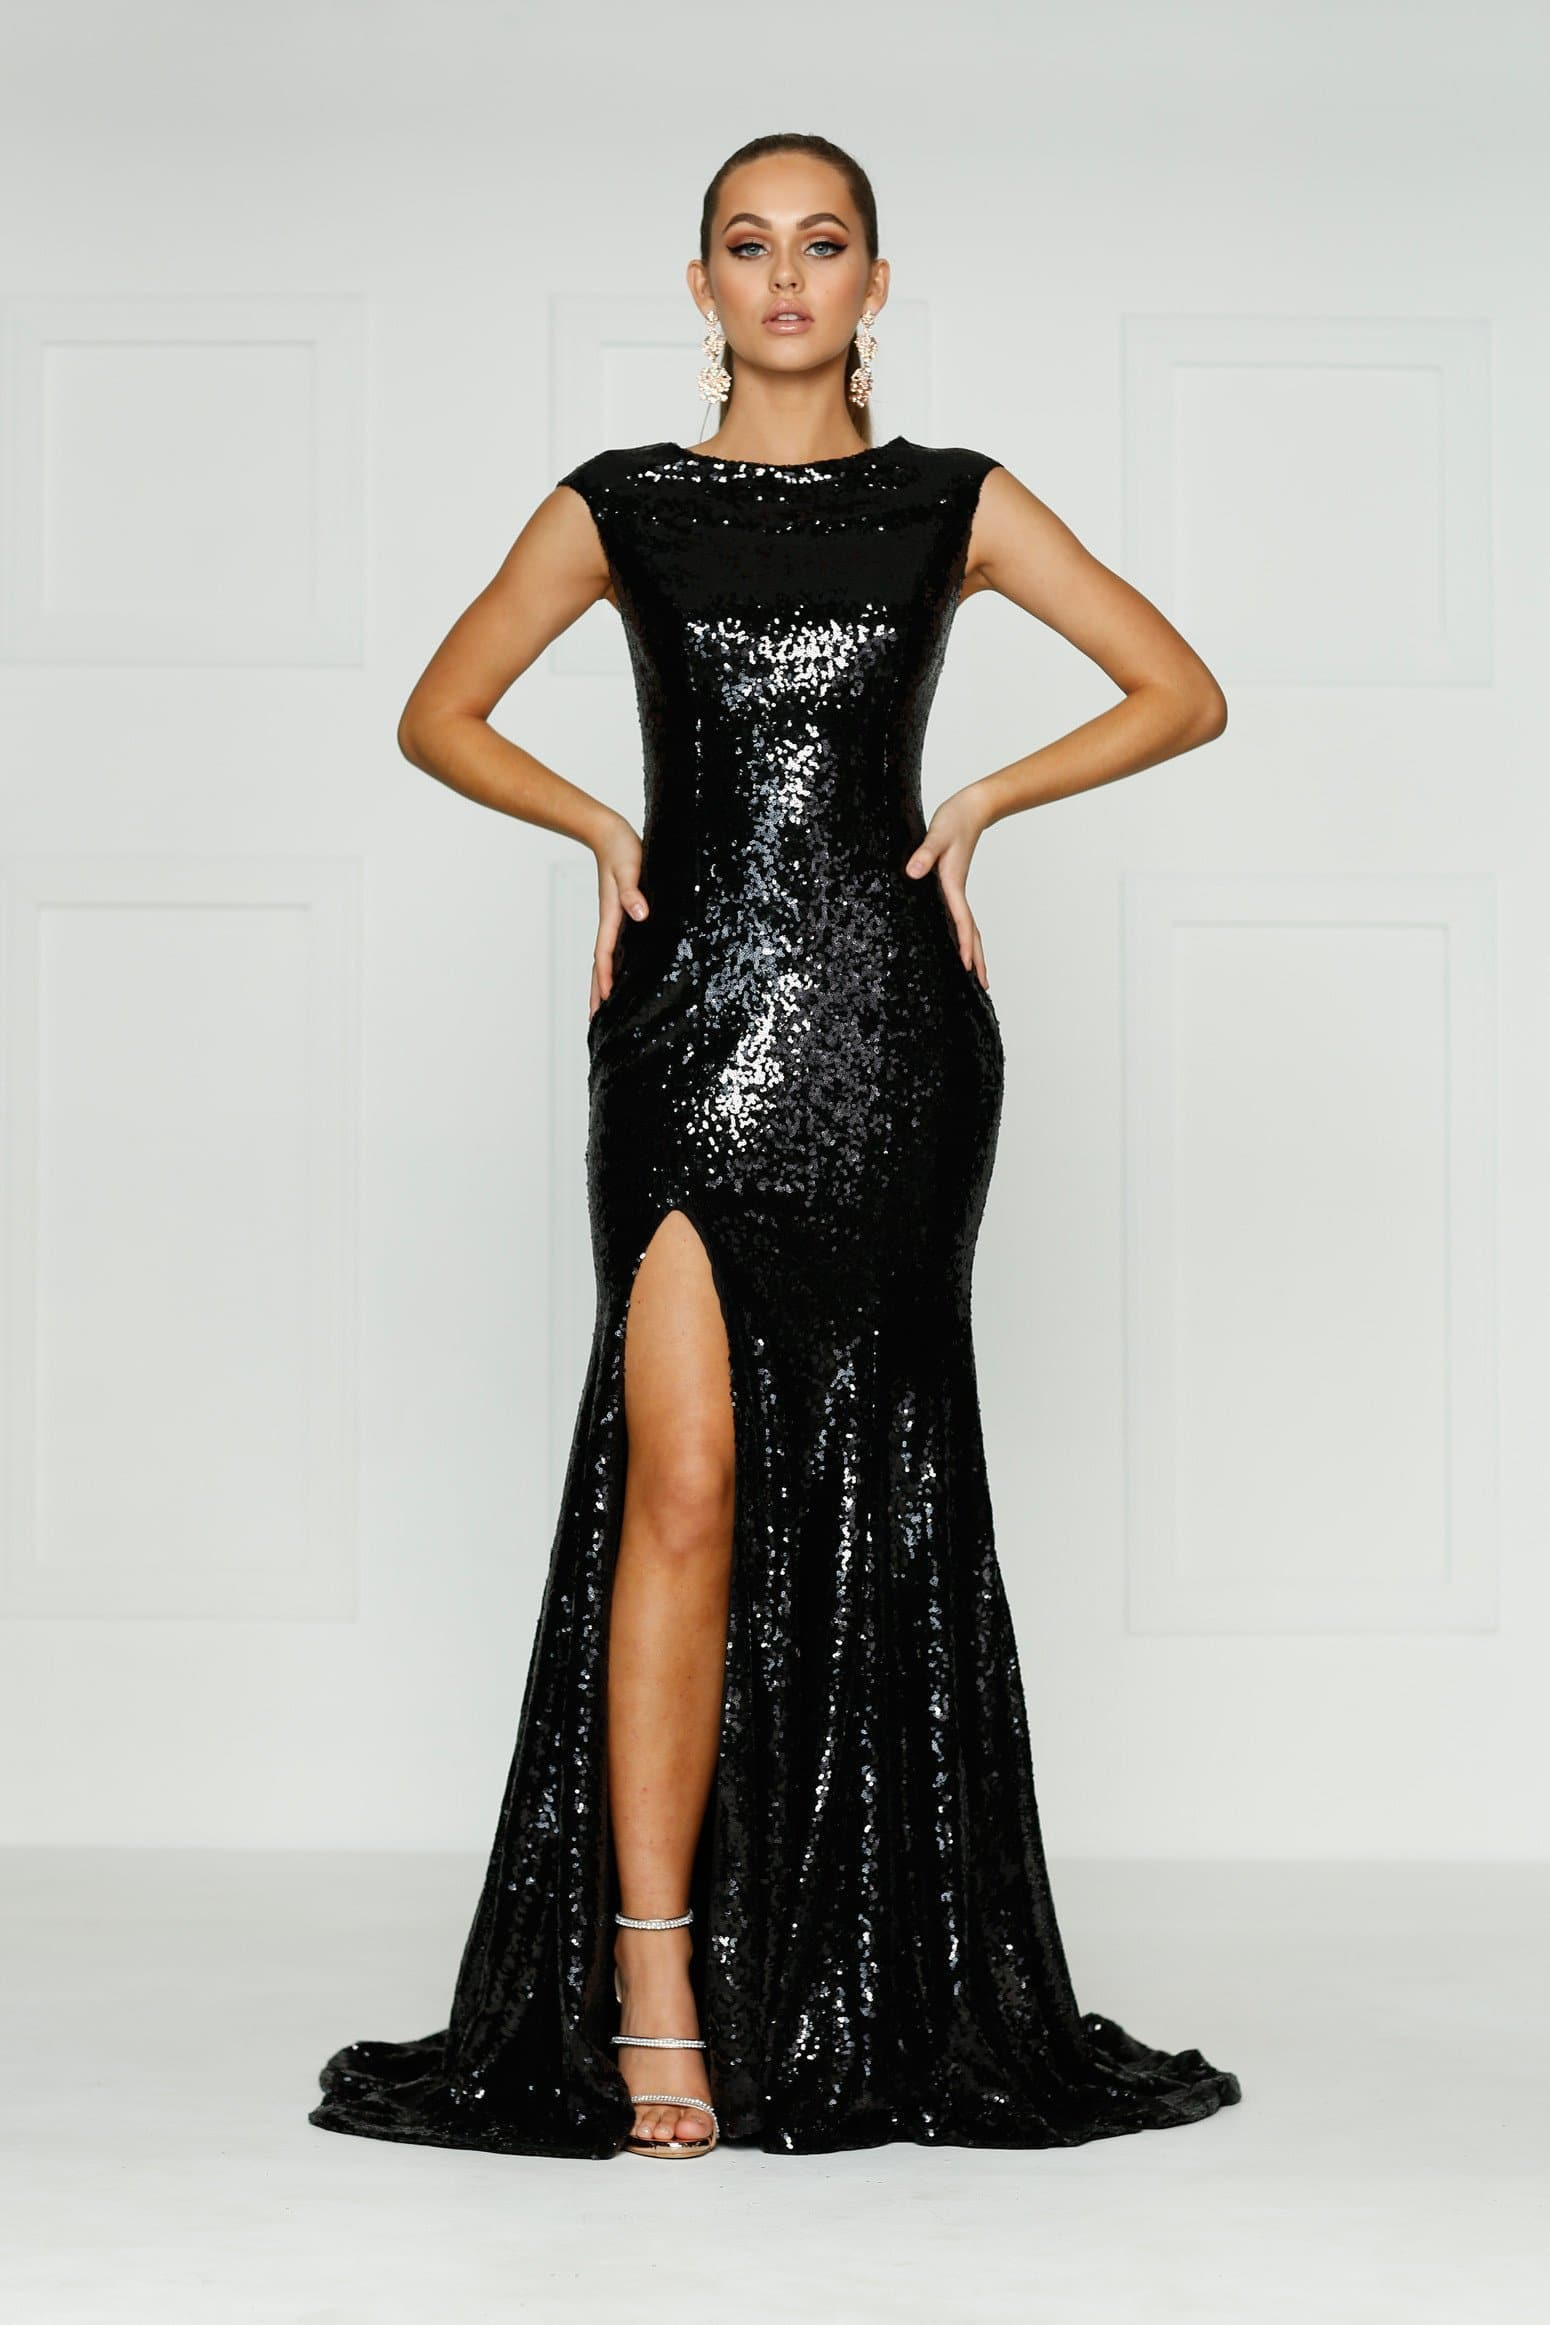 Mermaid Train Dresses | Afterpay | Sezzle | Free Worldwide Shipping ...